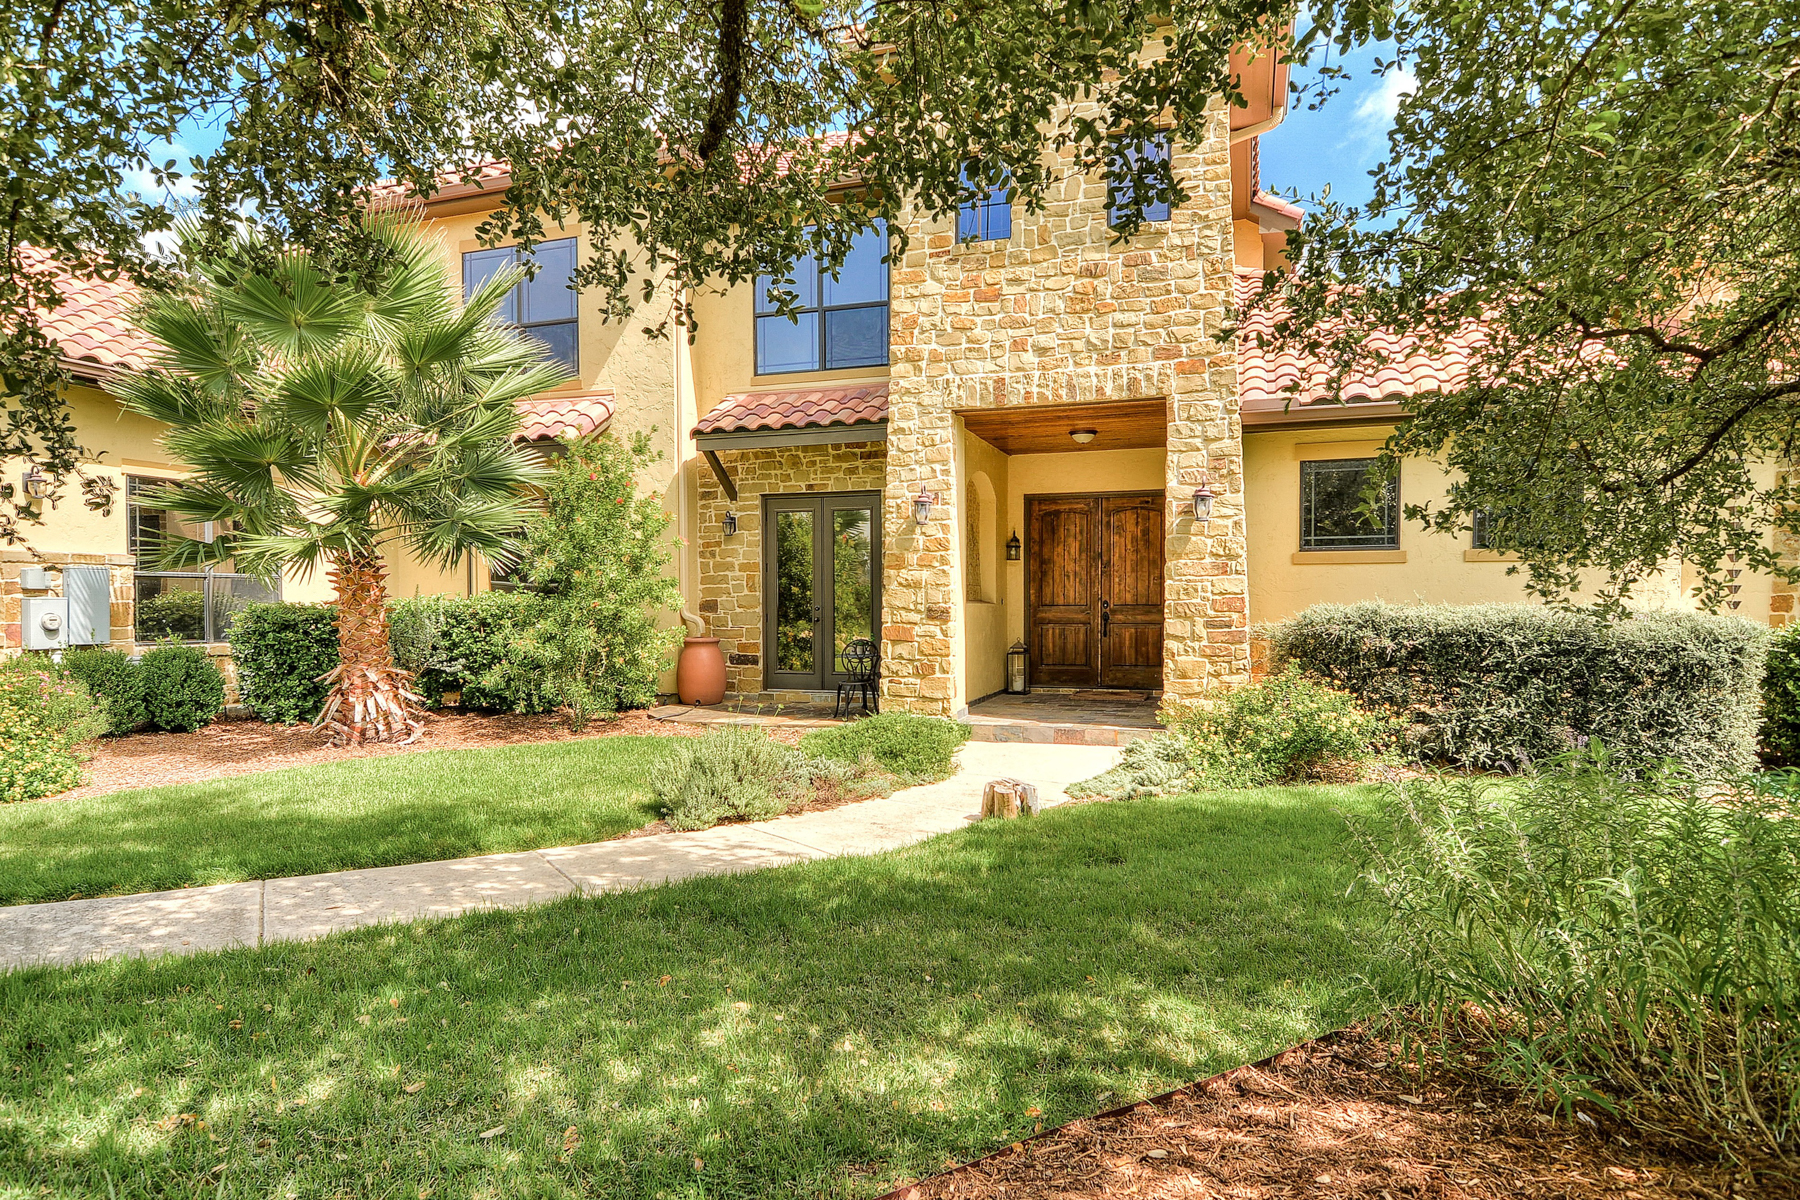 Single Family Home for Sale at Fabulous Mediterranean Home in Menger Springs 108 Cabin Springs Boerne, Texas 78006 United States